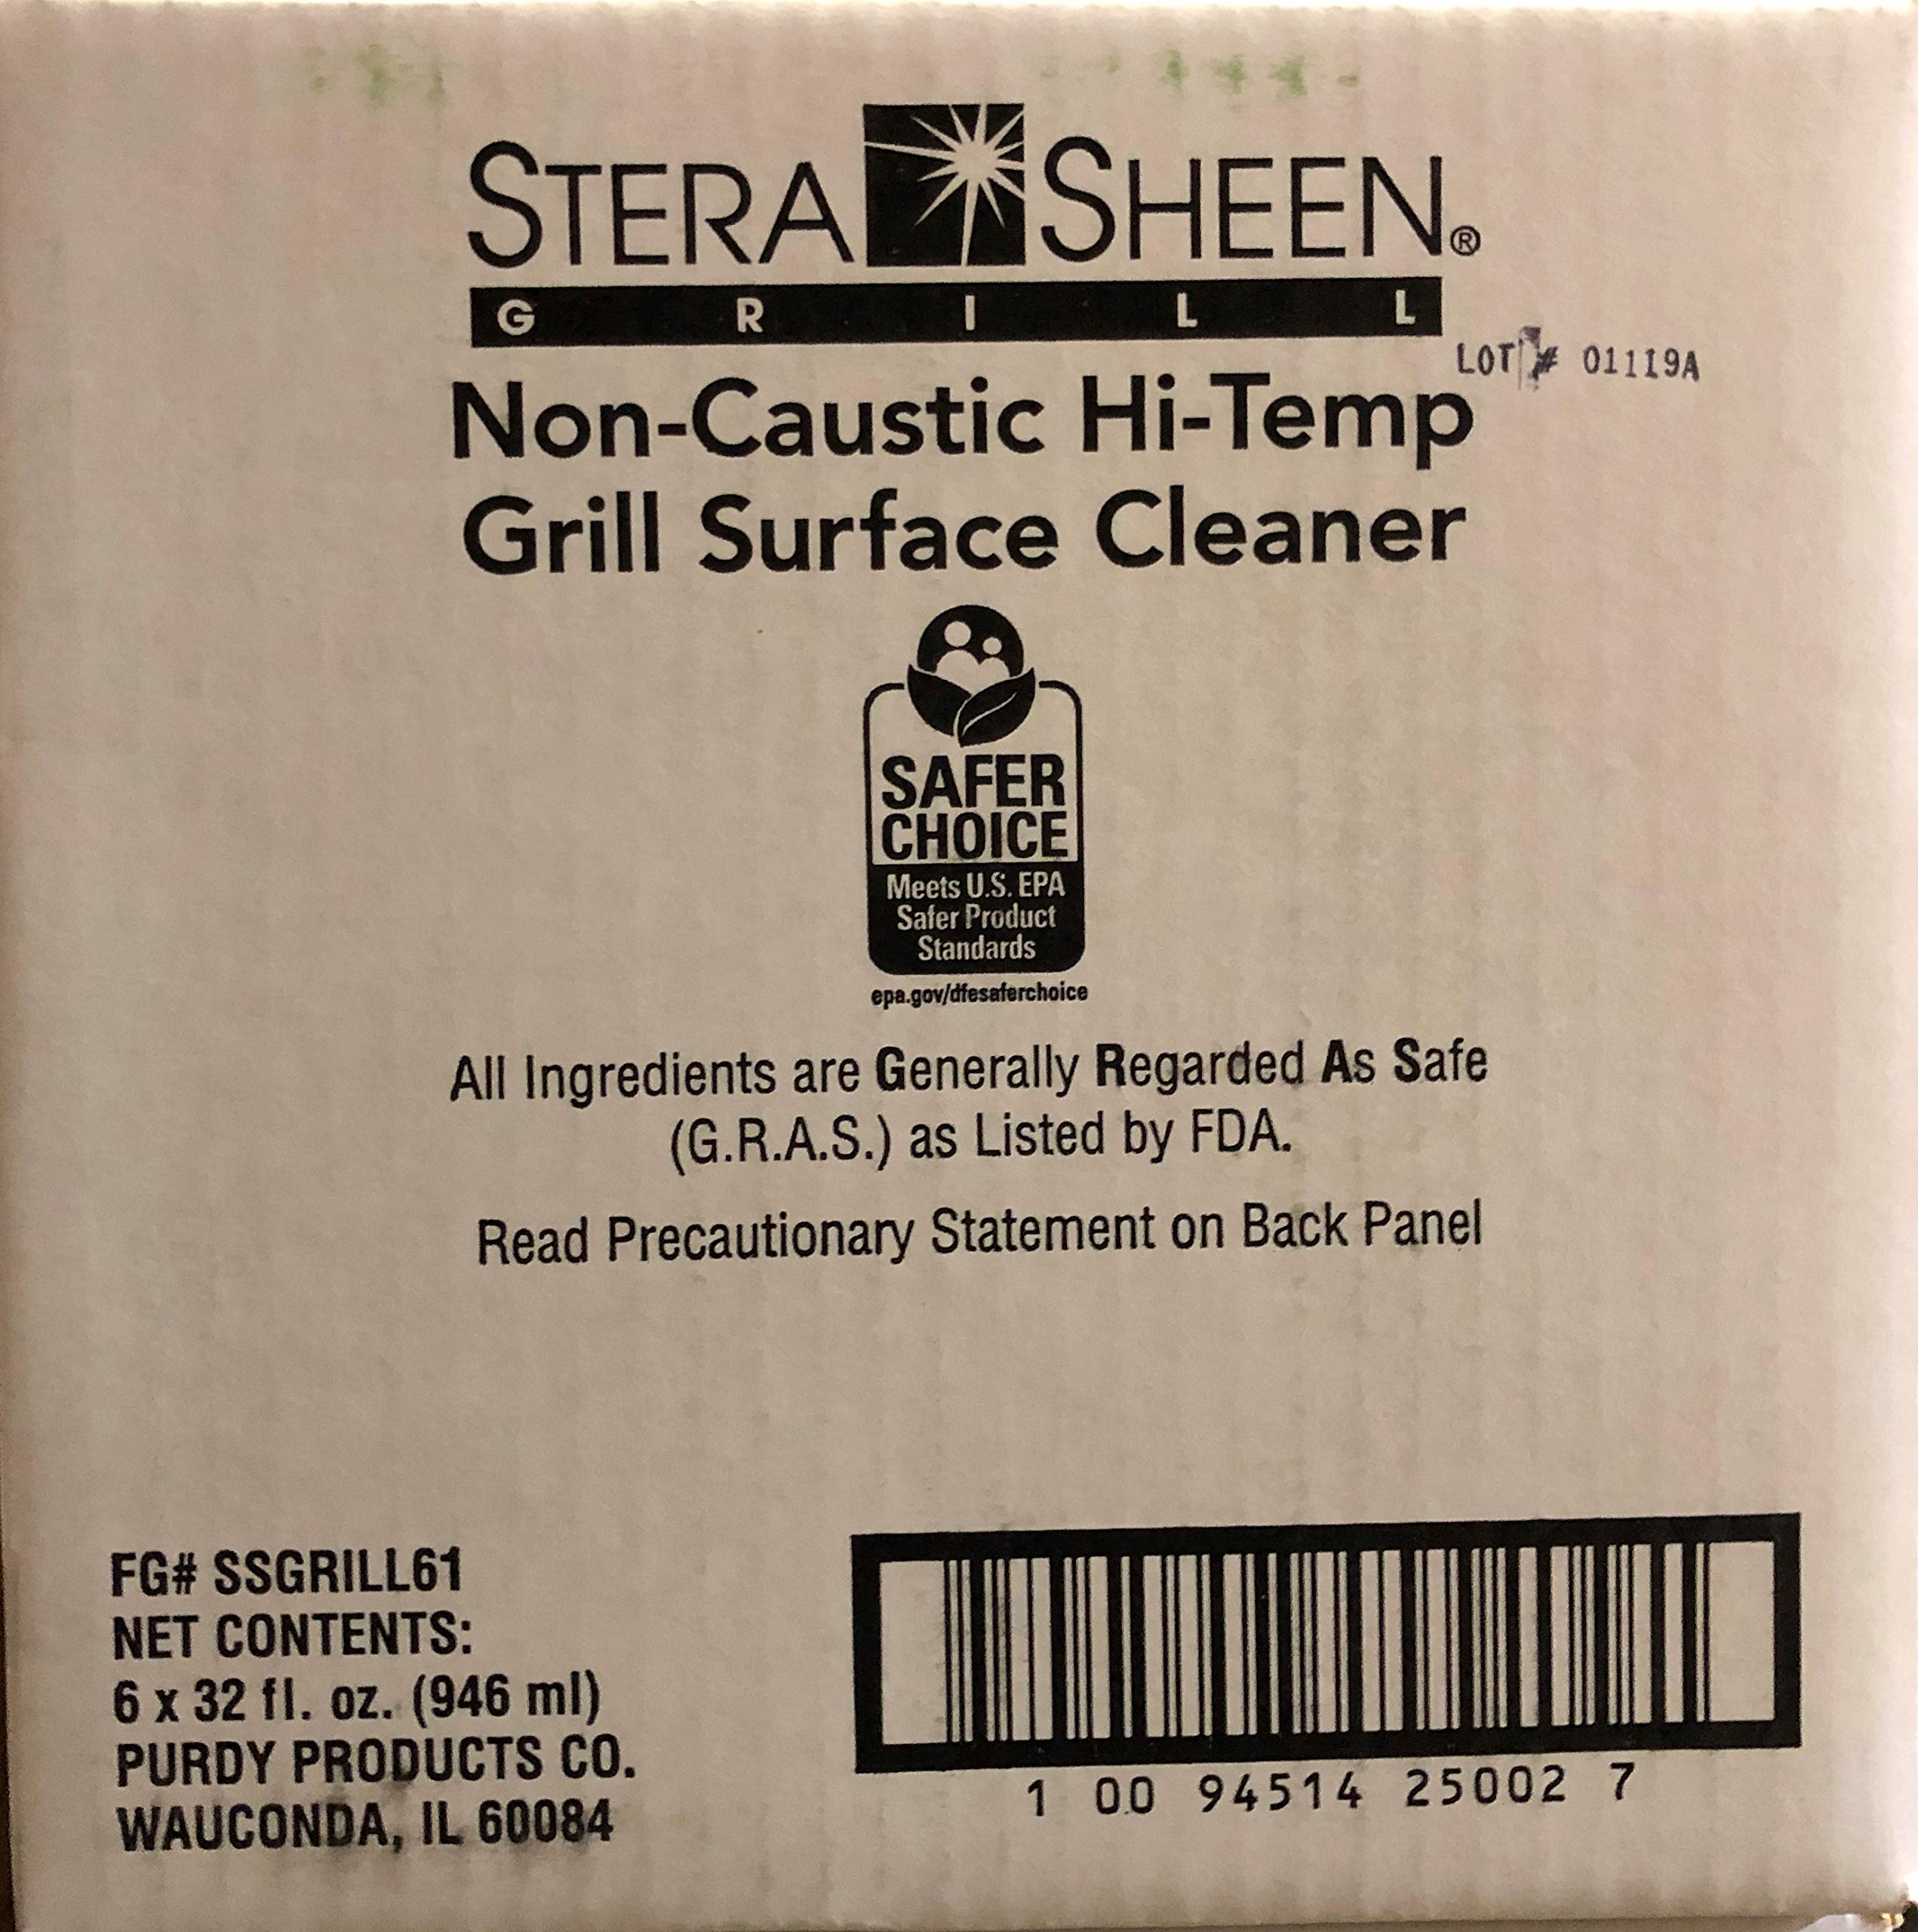 Stera-Sheen | 6 x 32 fl. Liquid Grill Cleaner | Food-Safe Non-Caustic Hi-Temp Grill Surface Cleaner | SSGRILL61 Purdy Products | Clean Hot Surfaces, Eliminate Tough Encrusted Grease | (6 x 946ml) by Stera Sheen Products (Image #4)